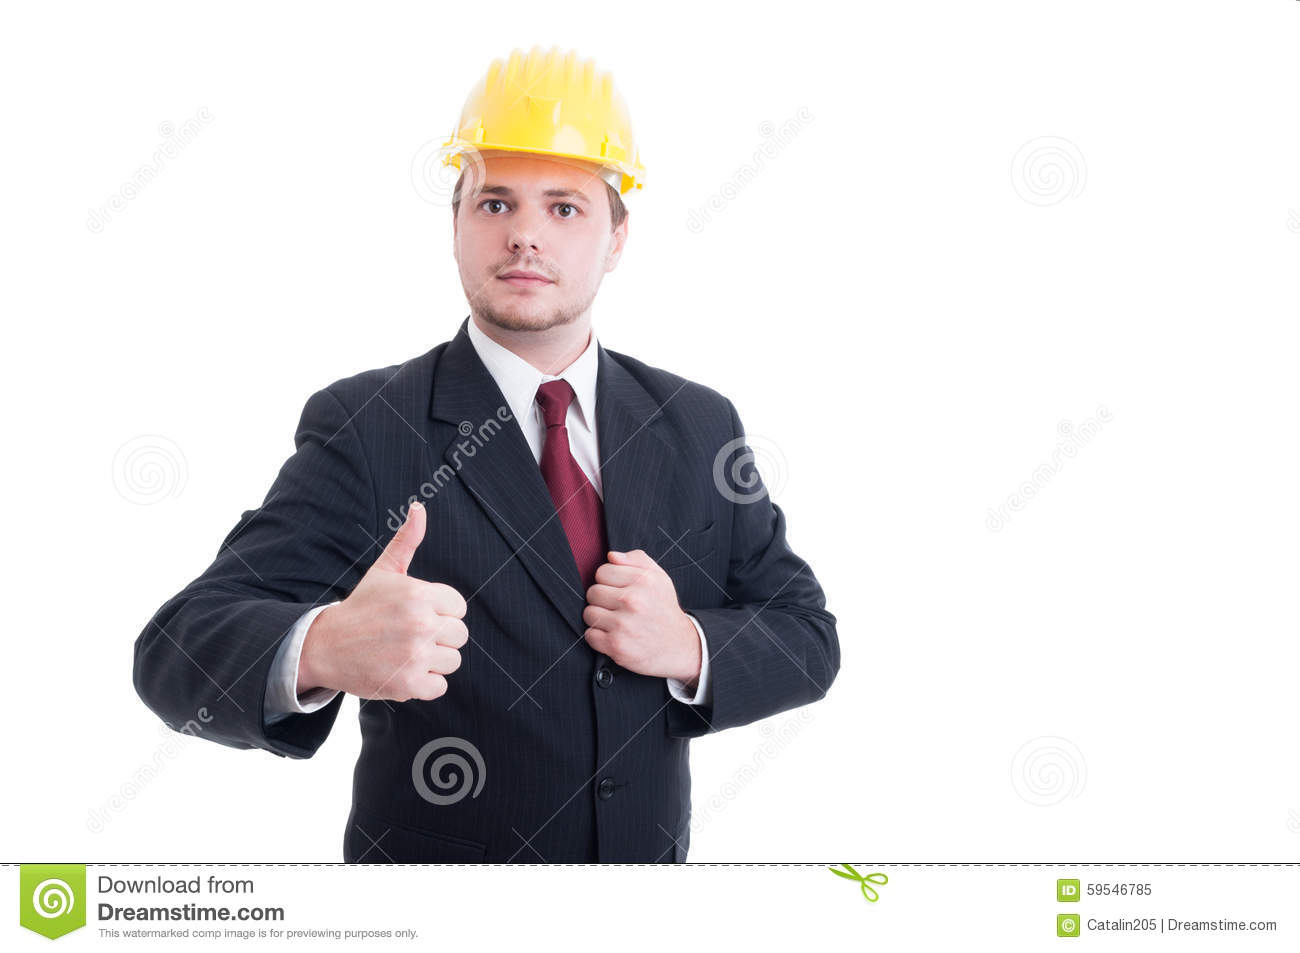 Engineer Or Architect Wearing Suit Tie And Hardhat Stock